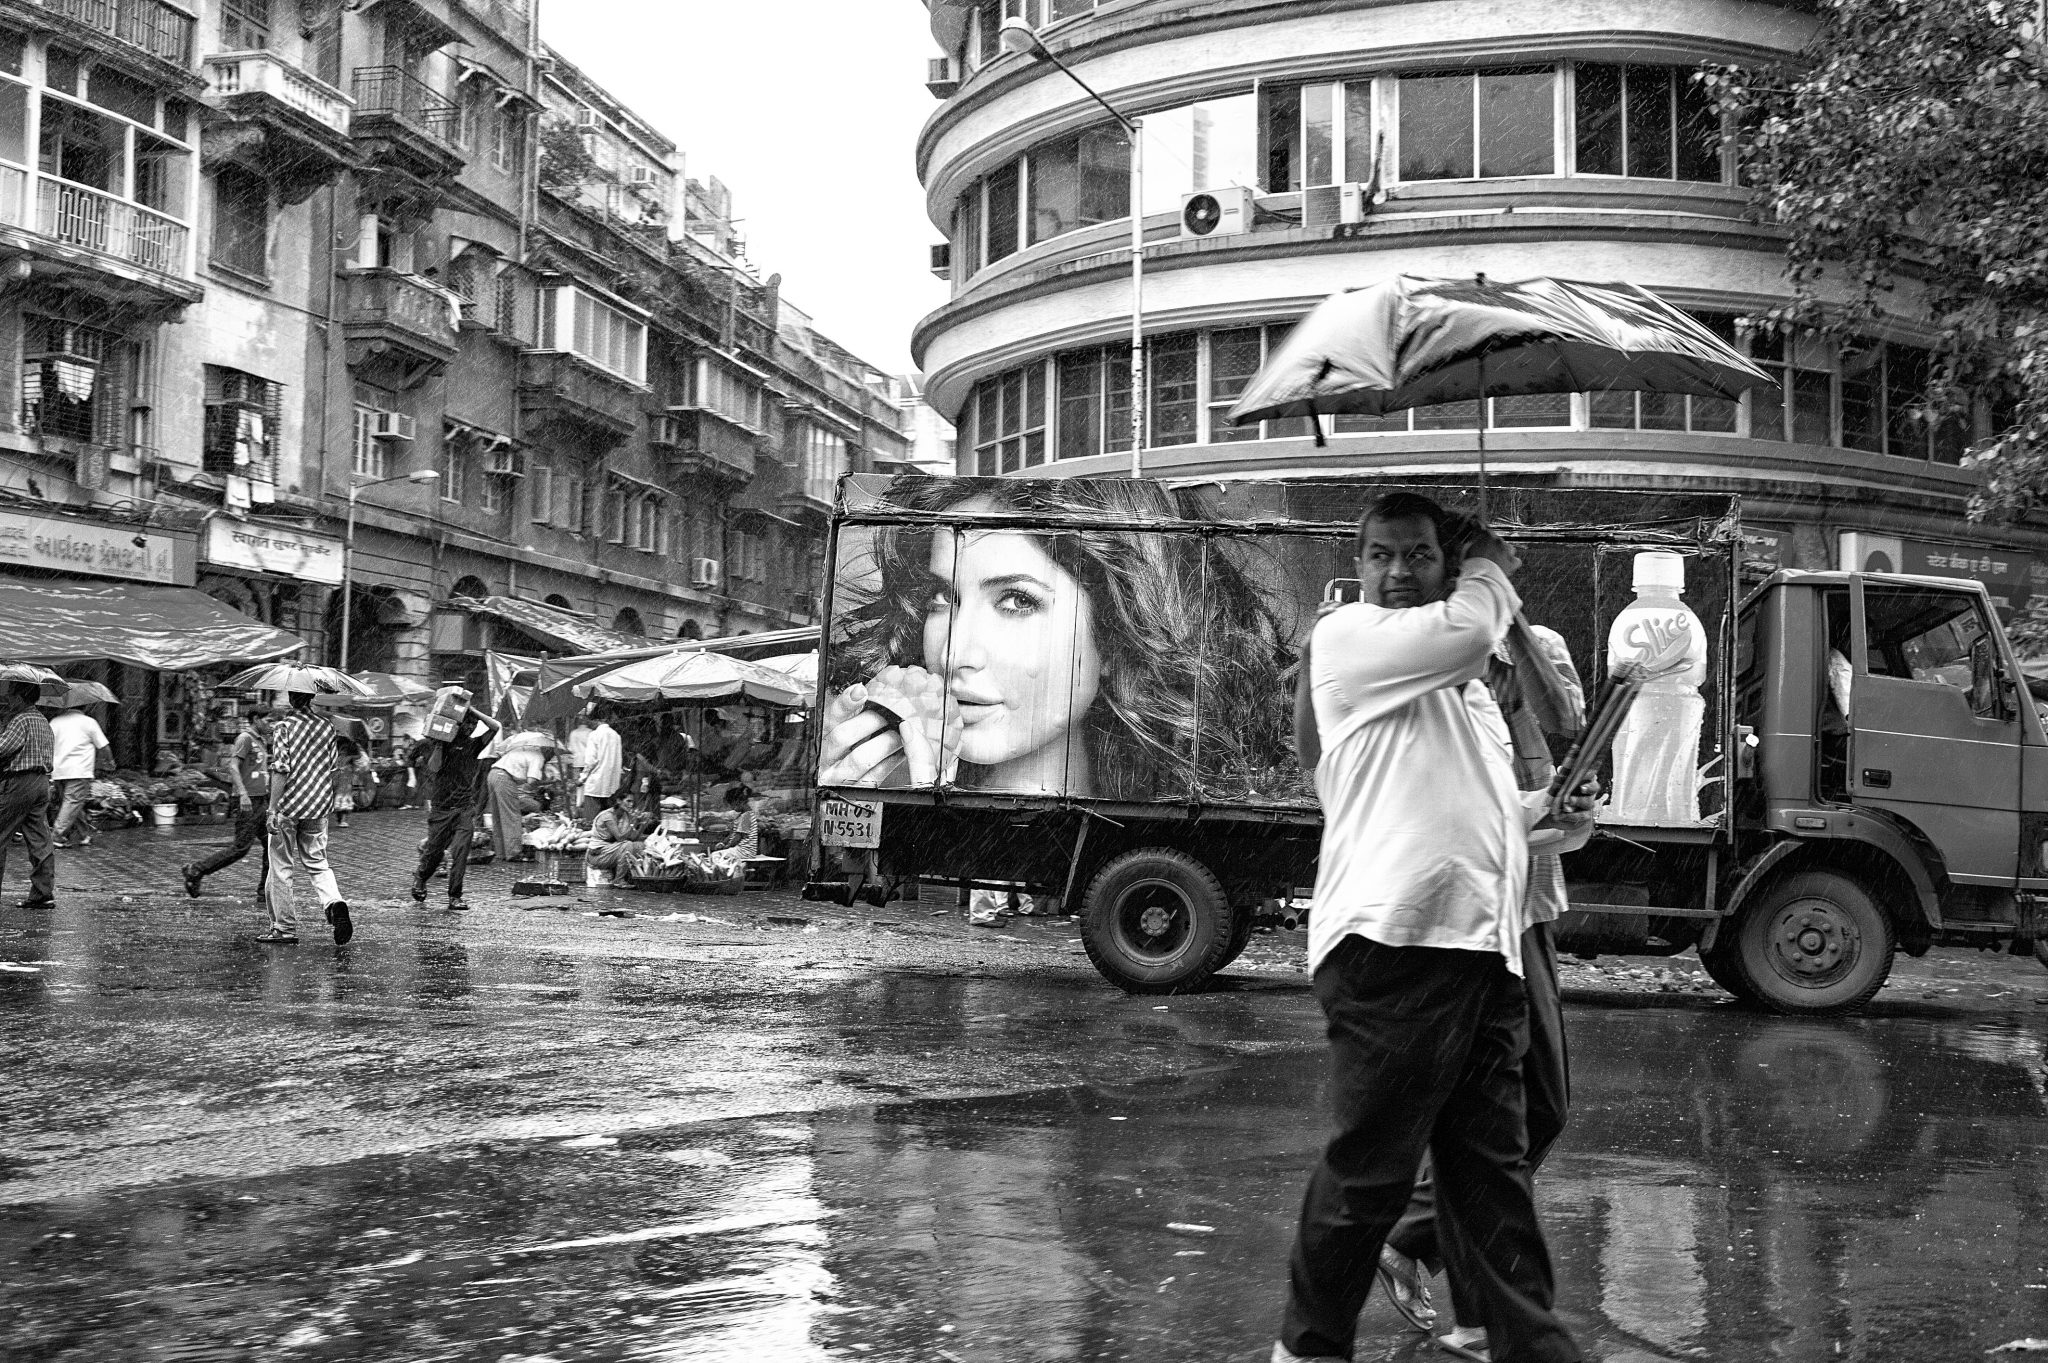 street photography of man in mumbai caught in a storm